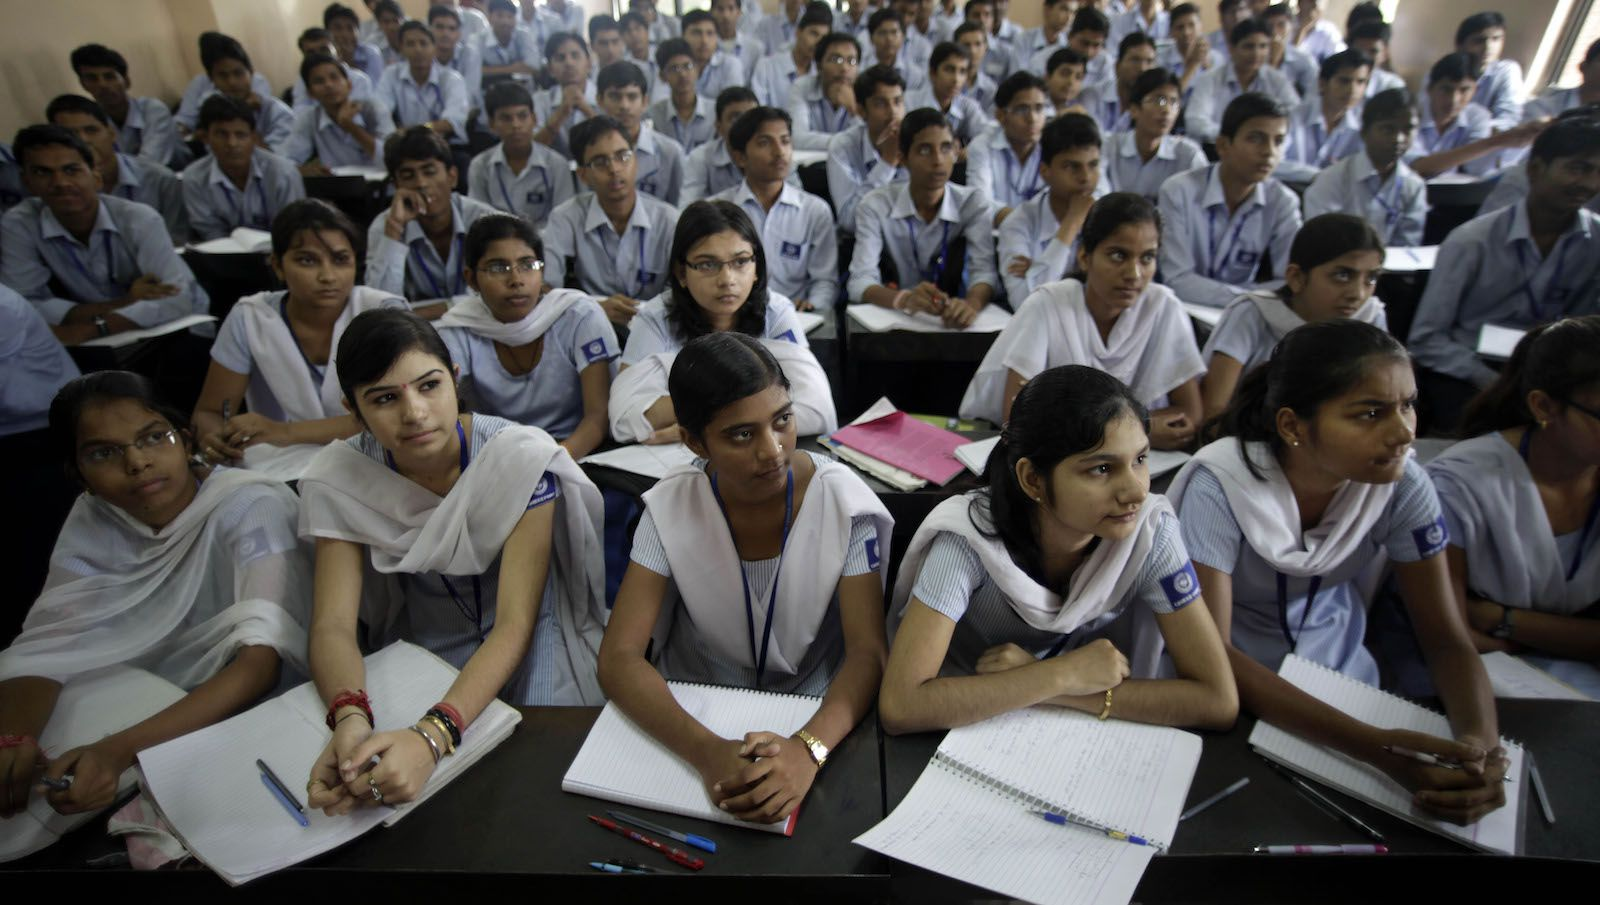 MONEY FOR NOTHING?: STATE OF PRIVATE EDUCATION IN INDIA